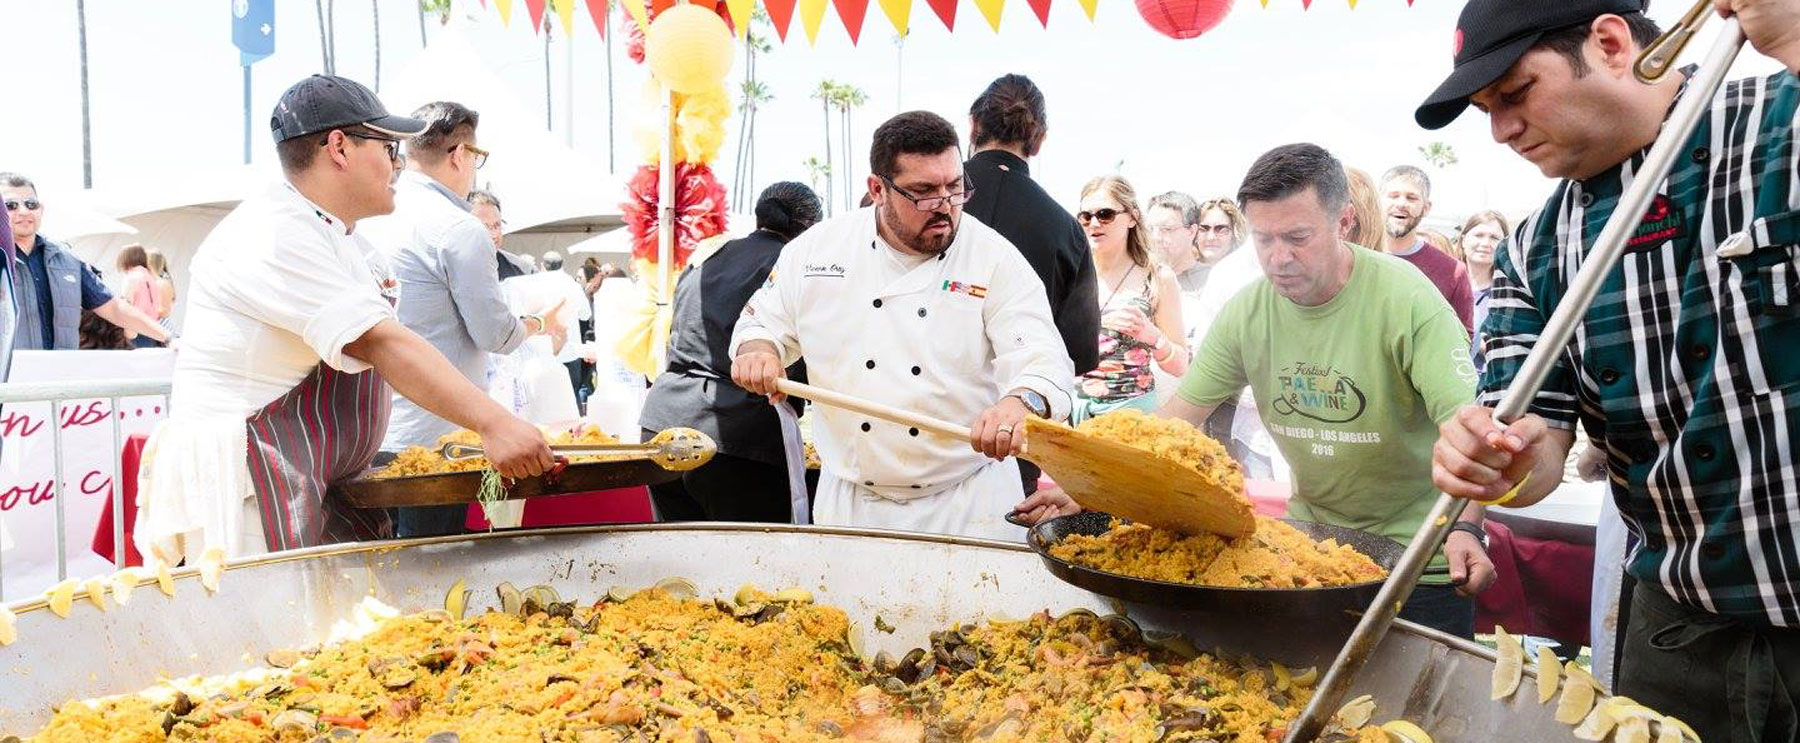 San Diego Paella Wine & Beer Festival - Top Things to Do